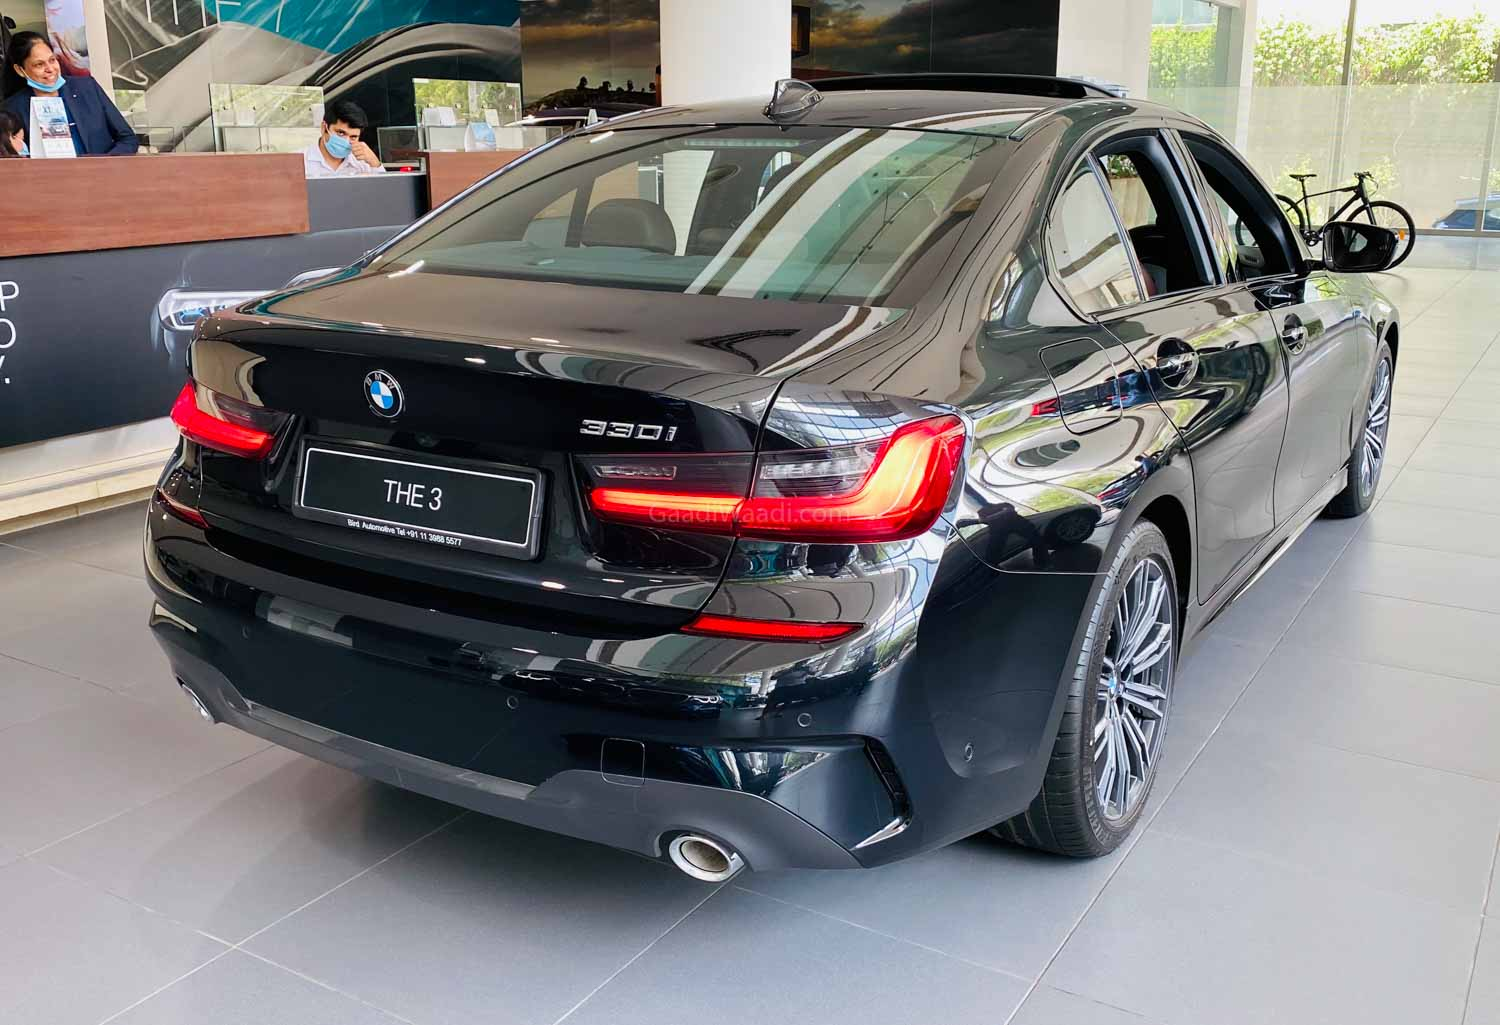 Discounts Up To Rs 5 Lakh On BMW 3 Series Luxury Sedan – Details